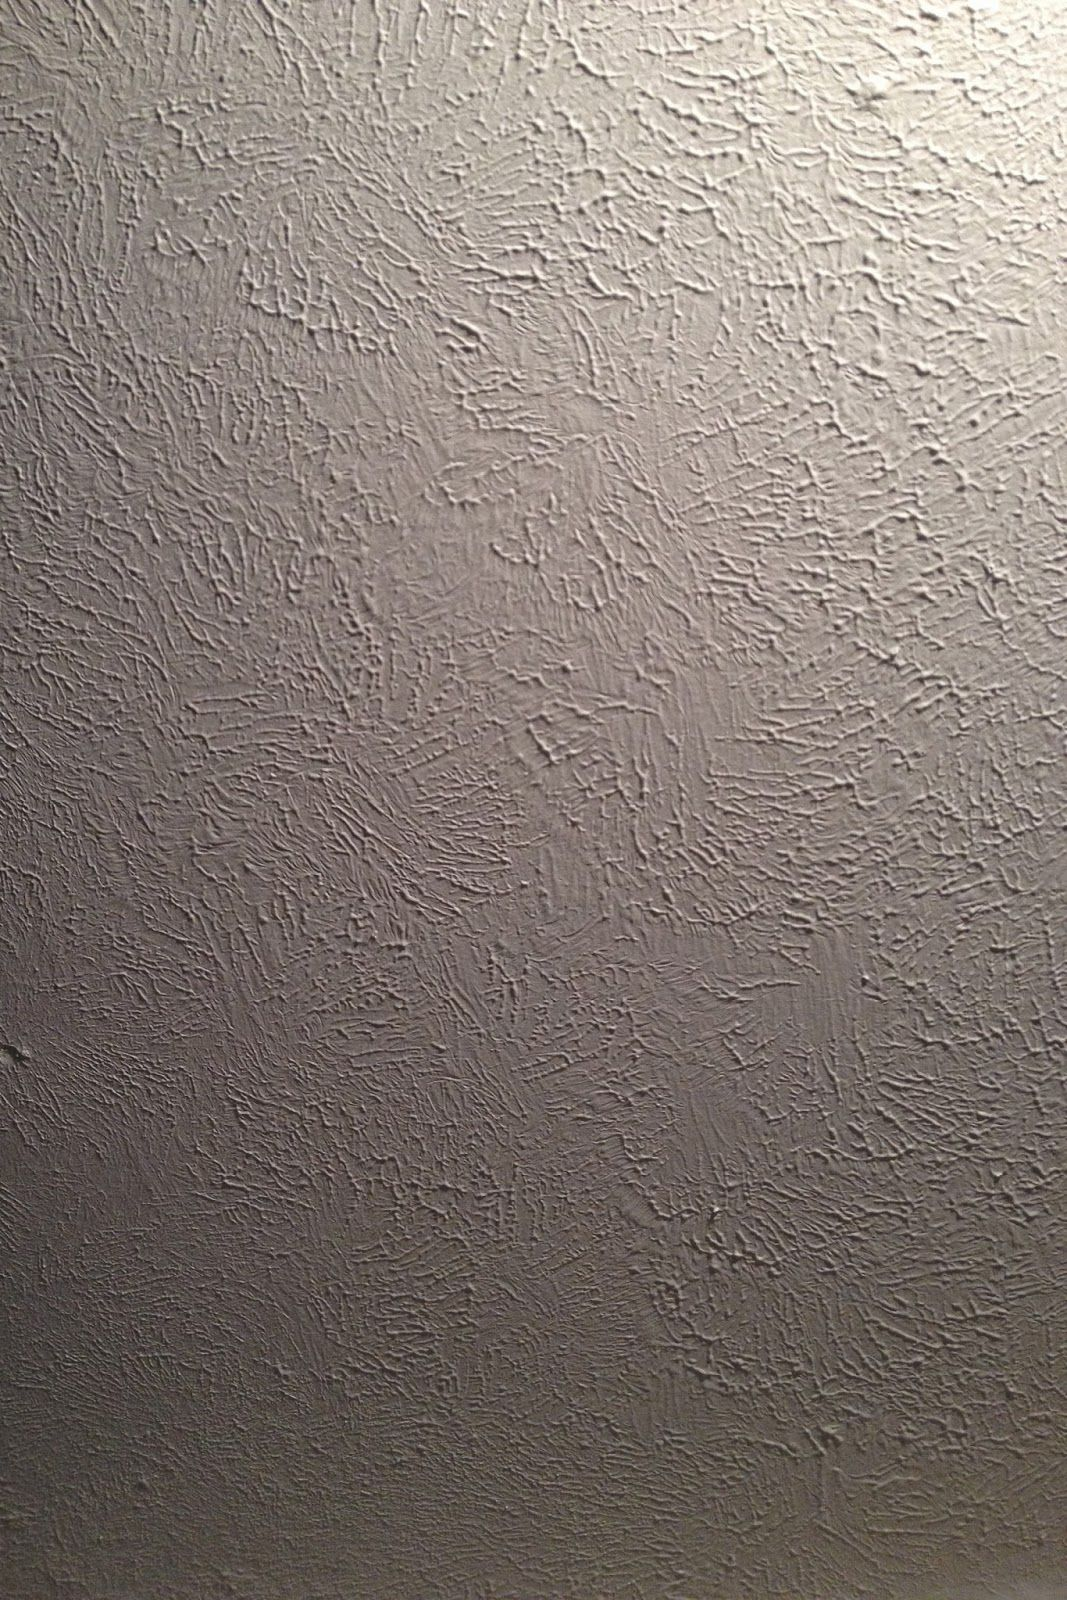 Wall Texture Examples Some Tipstechniques For Applying Knockdown Texture To Drywall